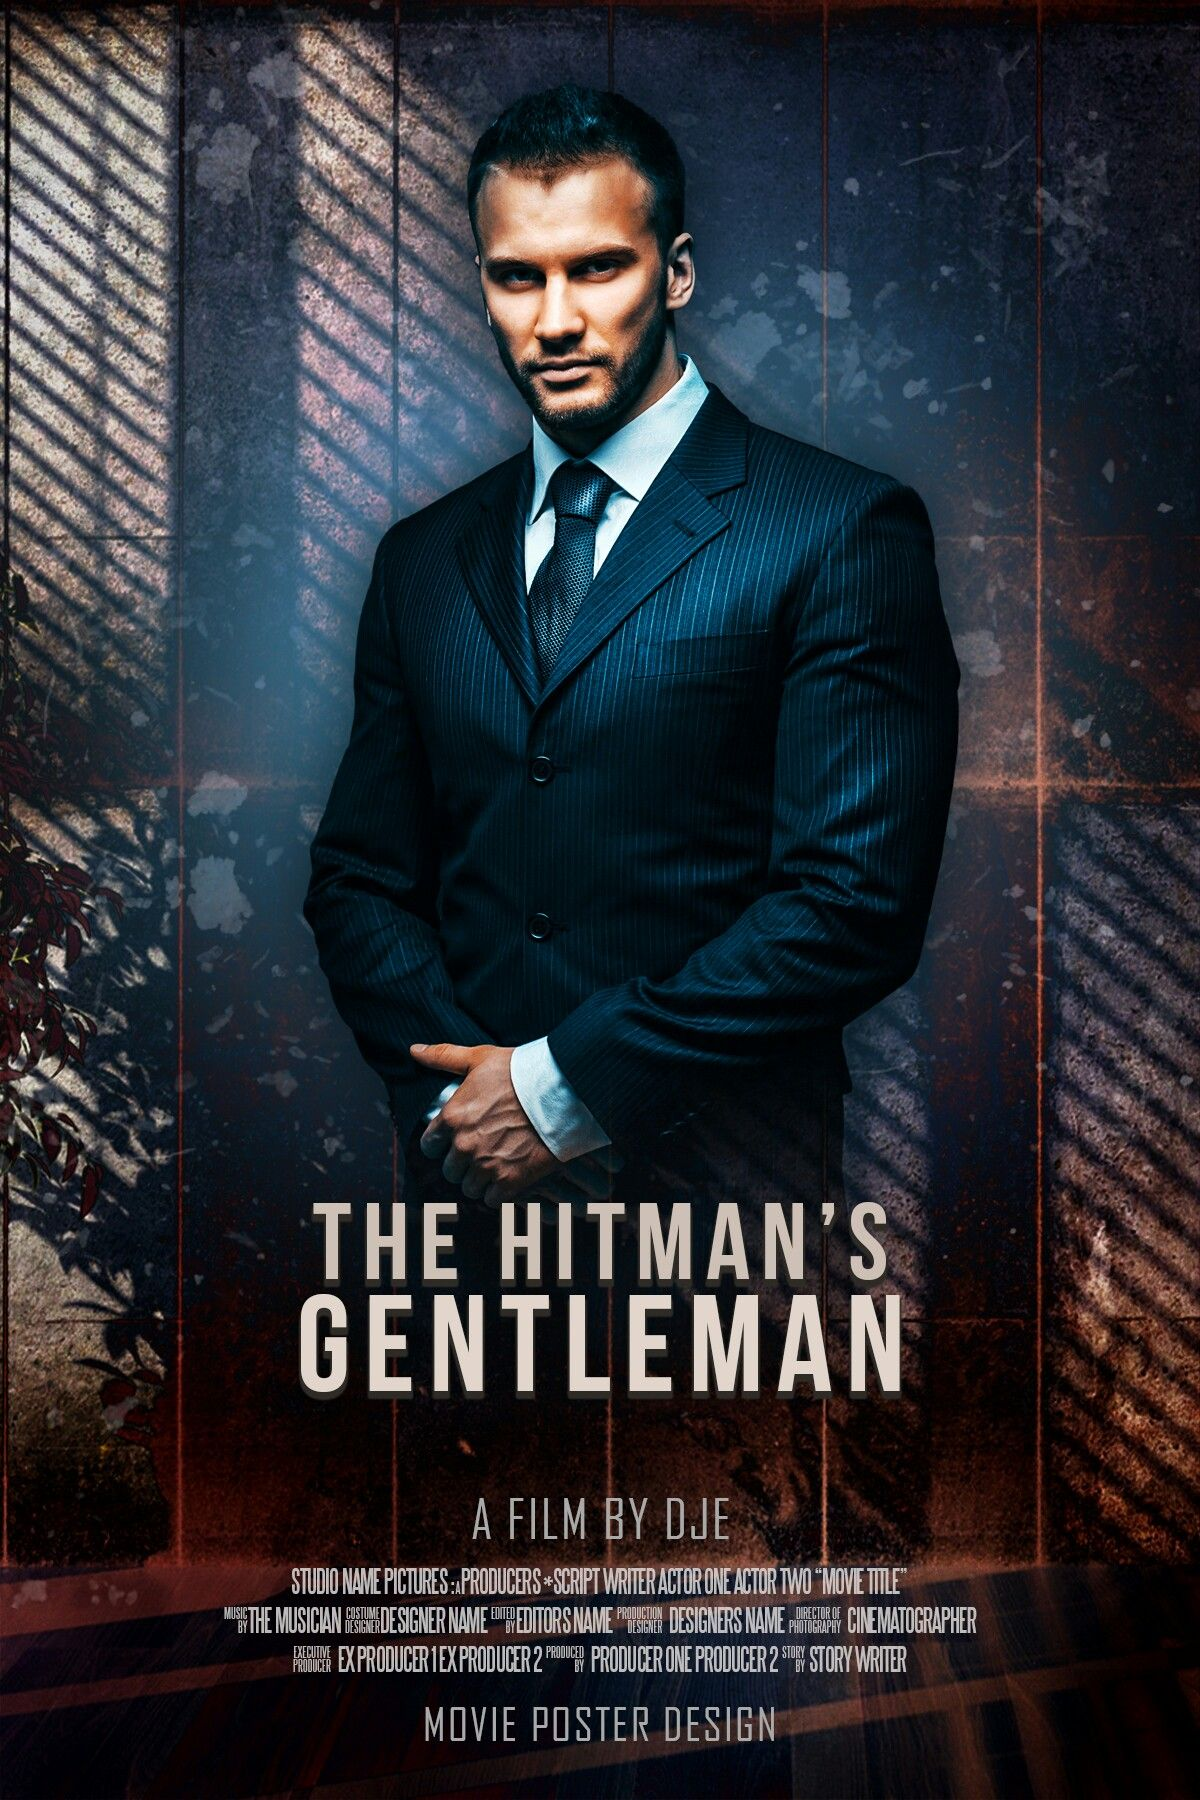 The Hitman S Gentleman Bydje Photoshop Poster Poster Hitman Movie Posters